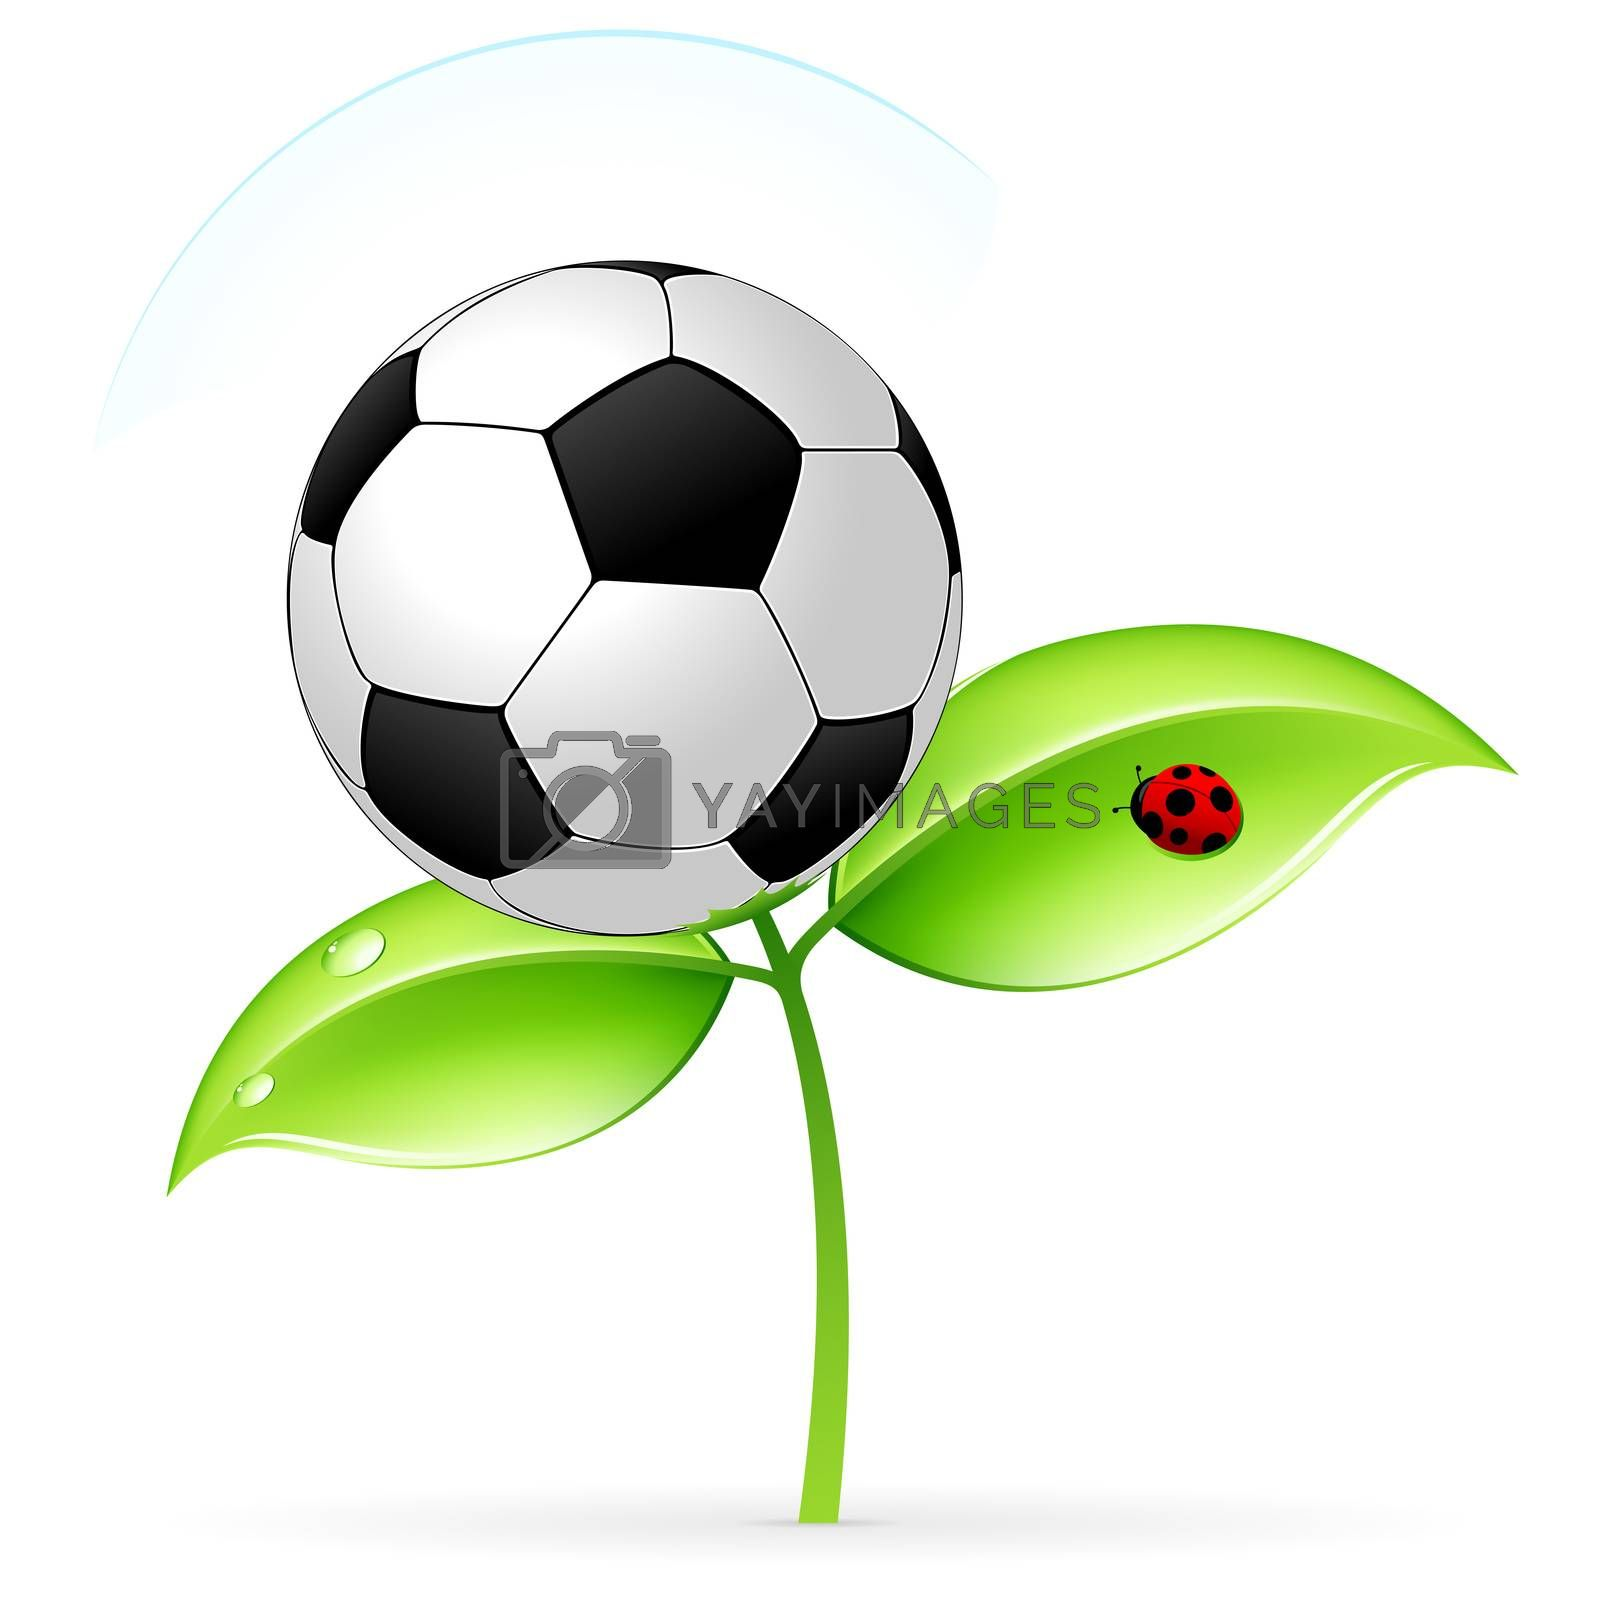 Icon with football by WaD